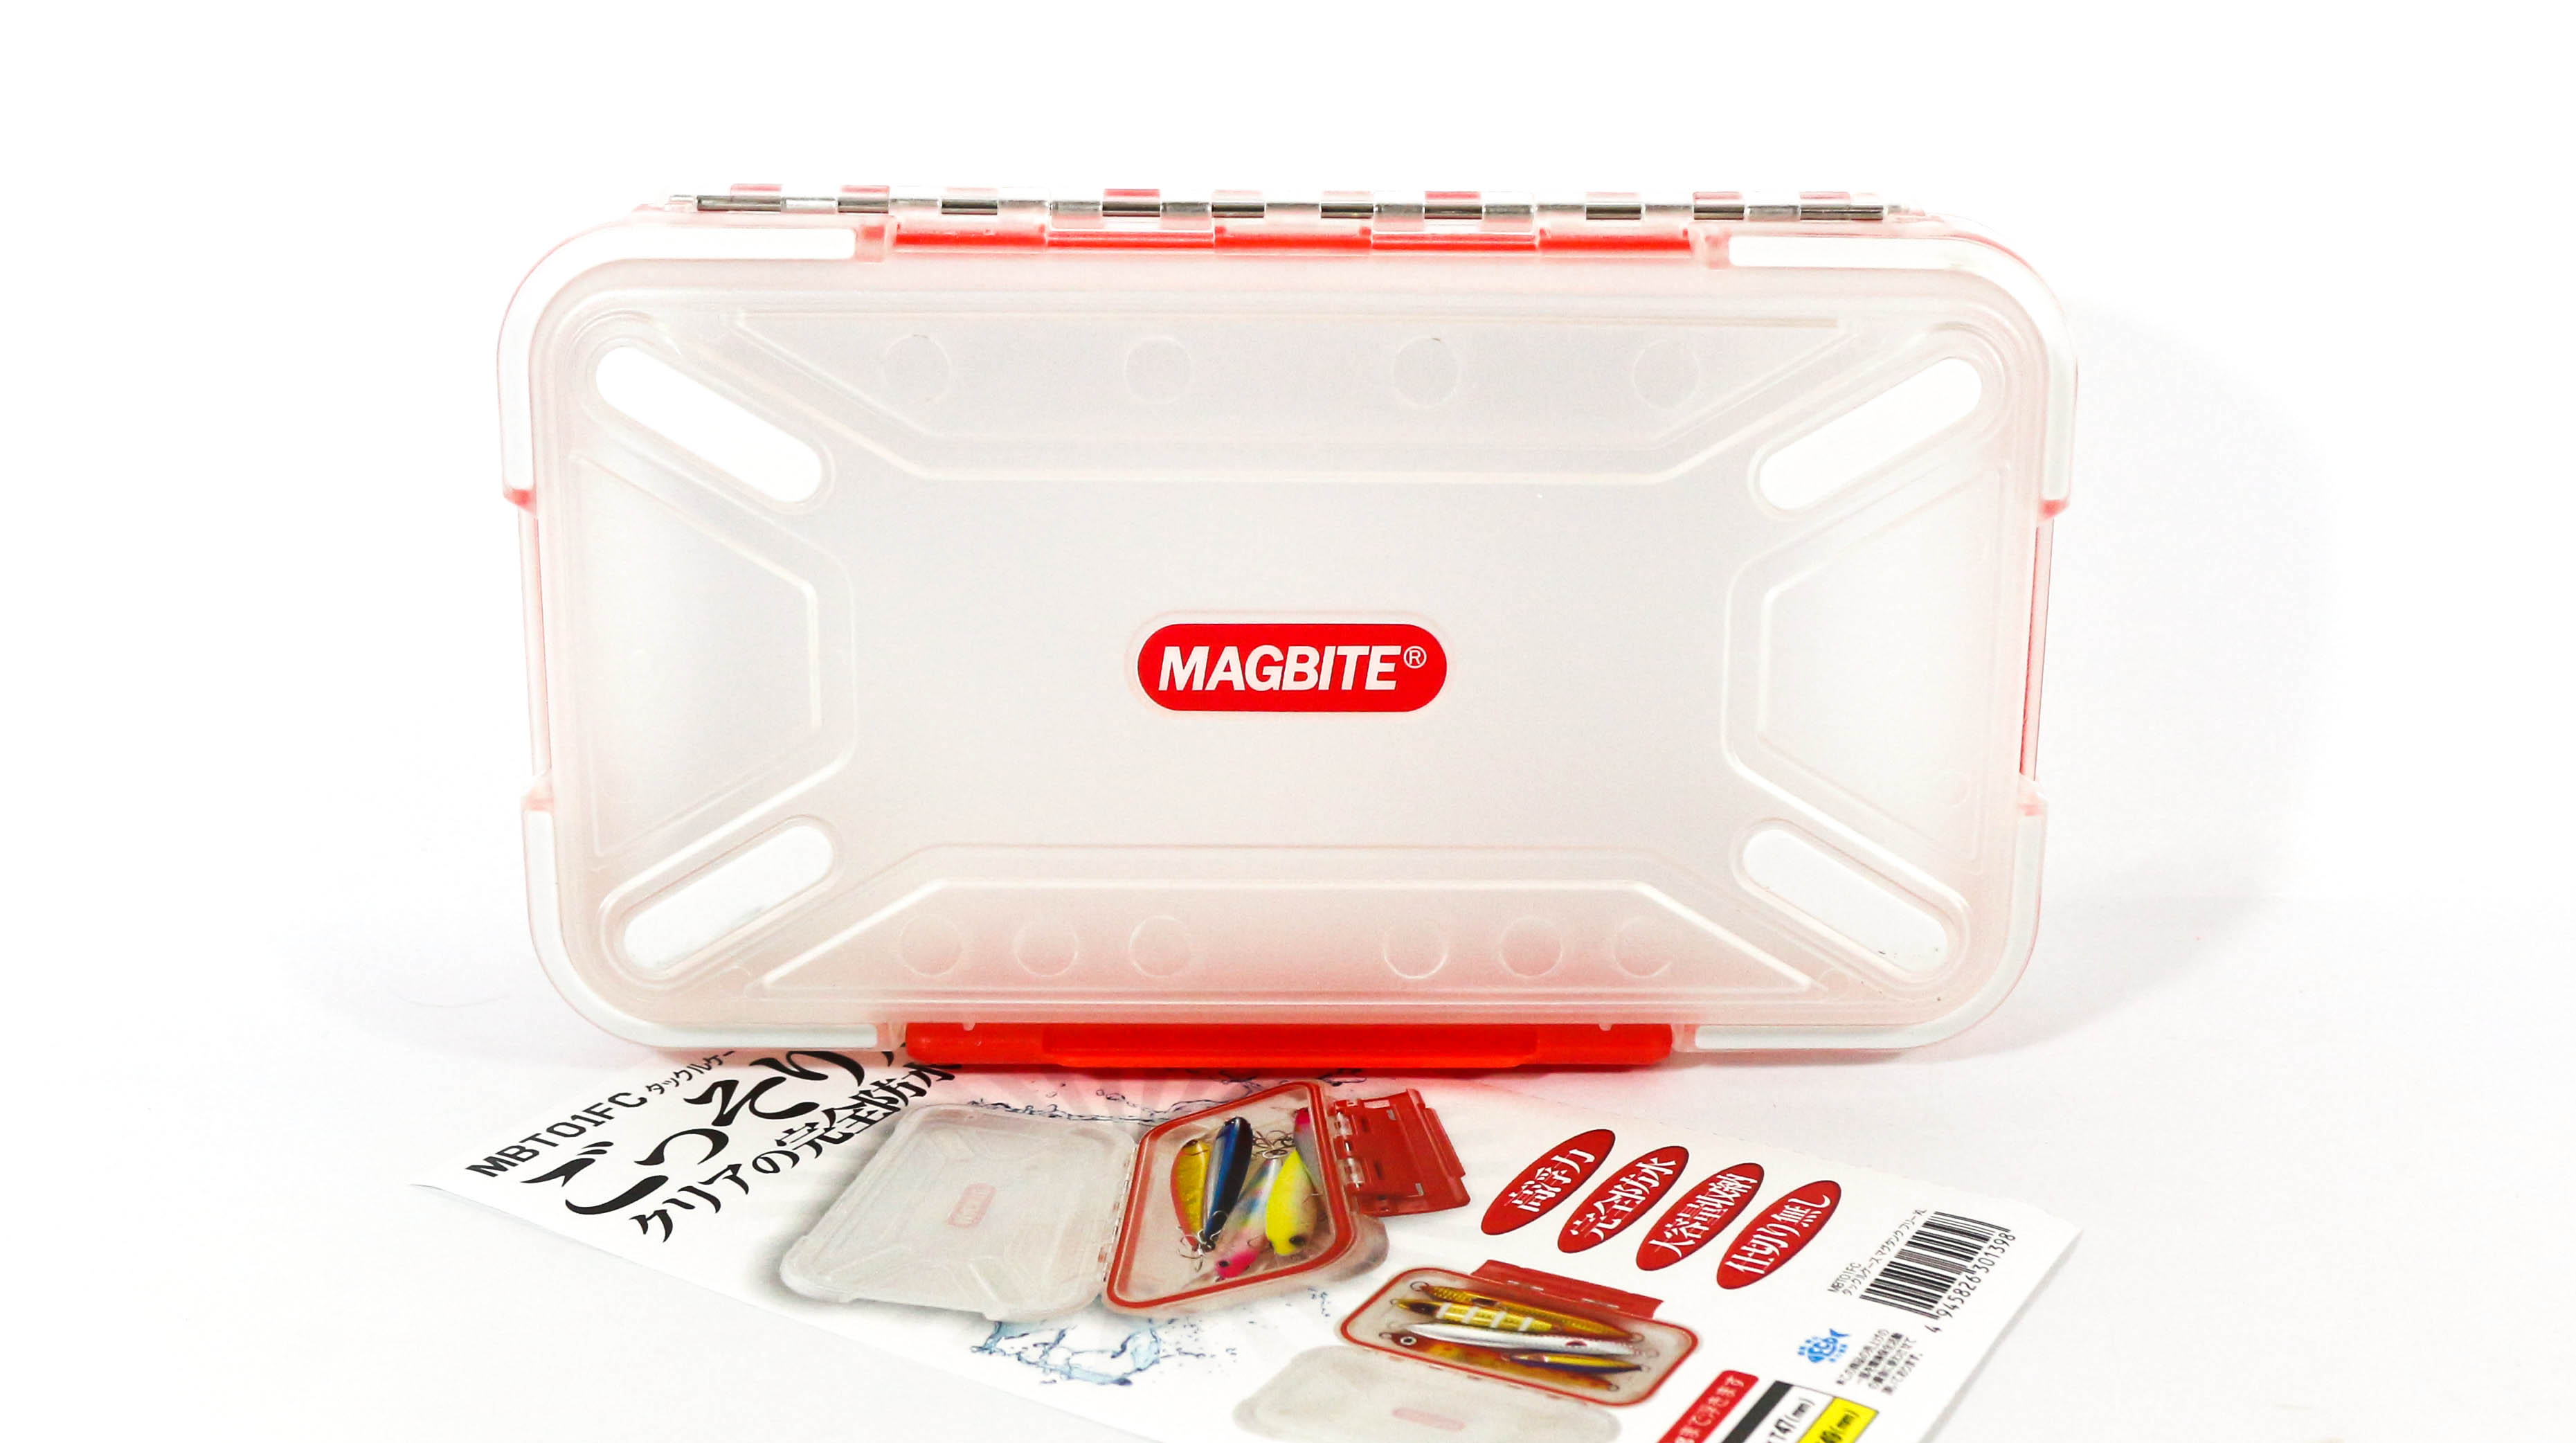 Harimitsu Mag Tank Tackle Box Free XL 200 x 115 x 49 mm Clear XL (1398)